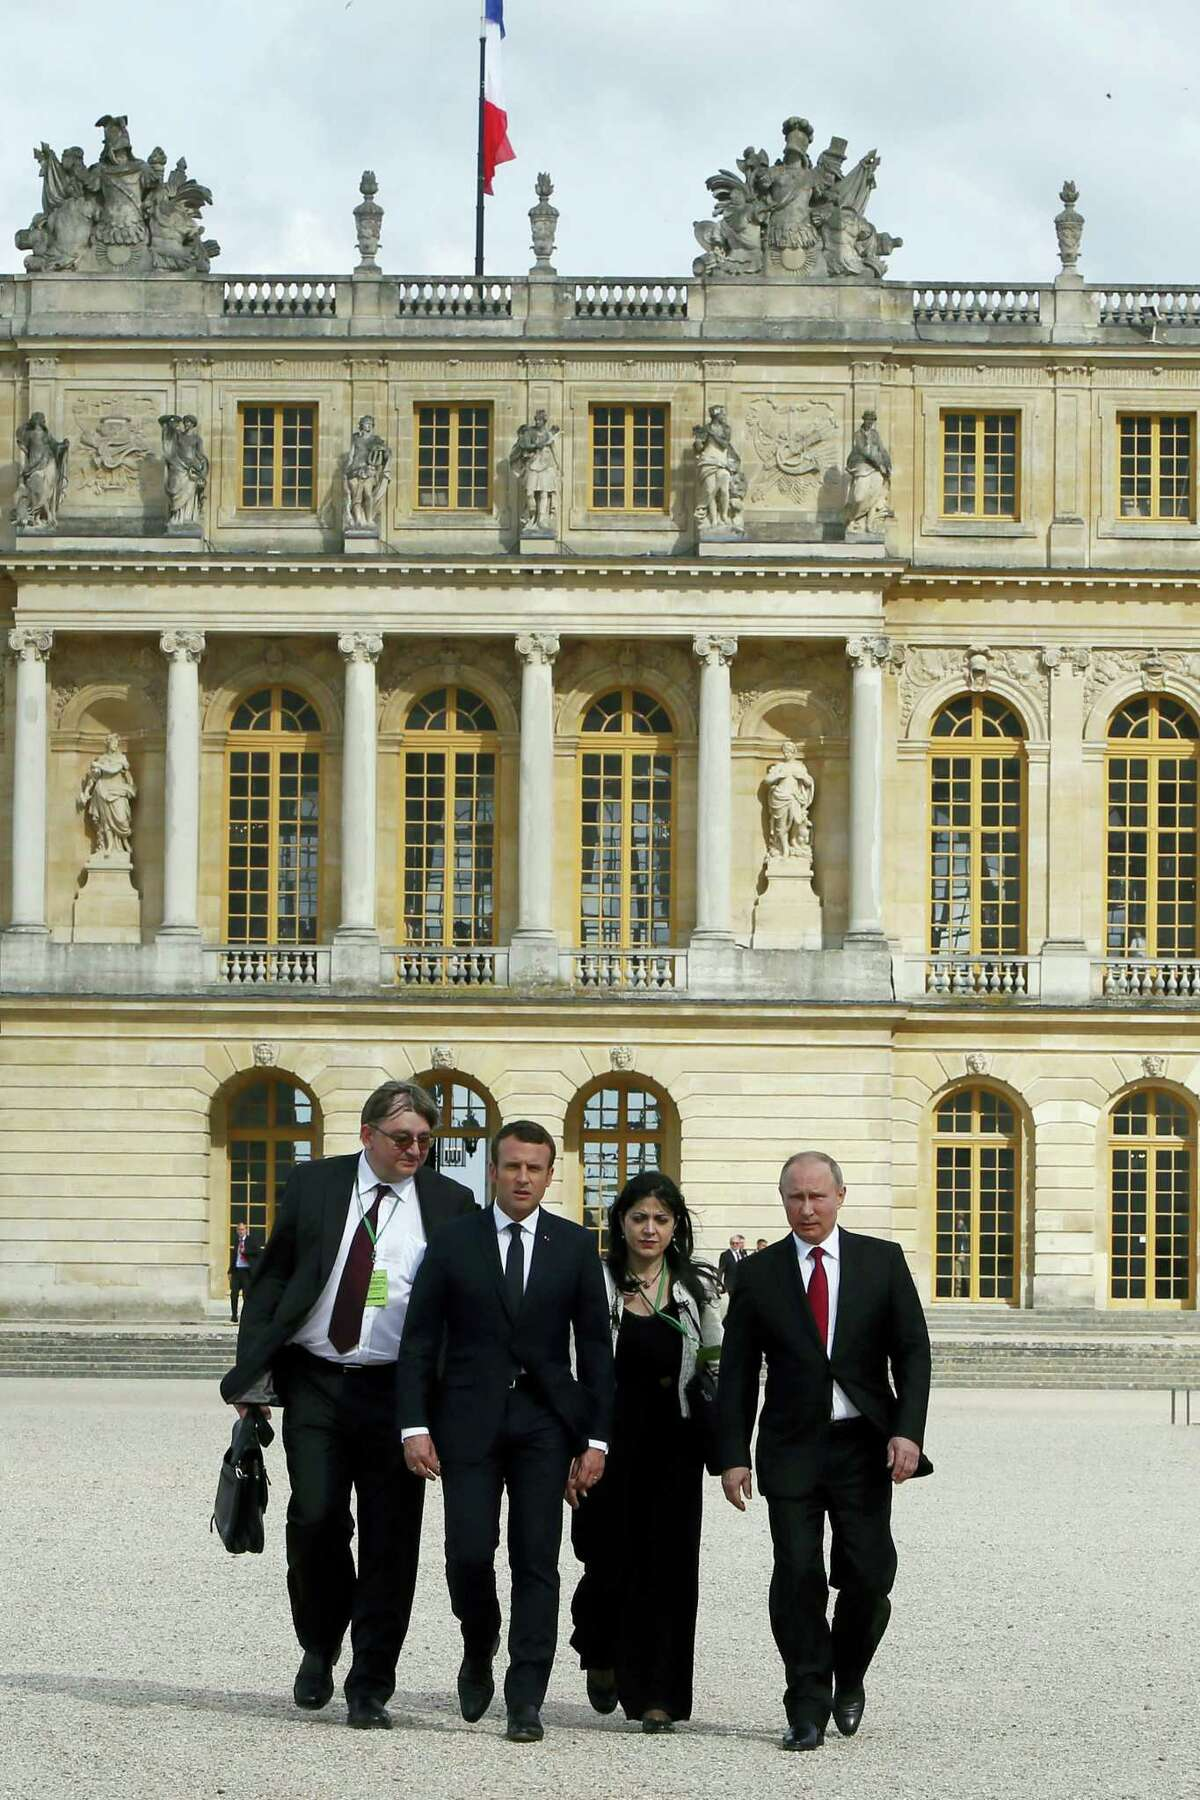 French President Emmanuel Macron, second left, and Russian President Vladimir Putin, right, followed by their interpreters, walk in the garden of the Versailles Palace following their meeting in Versailles, near Paris, France, Monday, May 29, 2017. Monday's meeting comes in the wake of the Group of Seven's summit over the weekend where relations with Russia were part of the agenda, making Macron the first Western leader to speak to Putin after the talks.